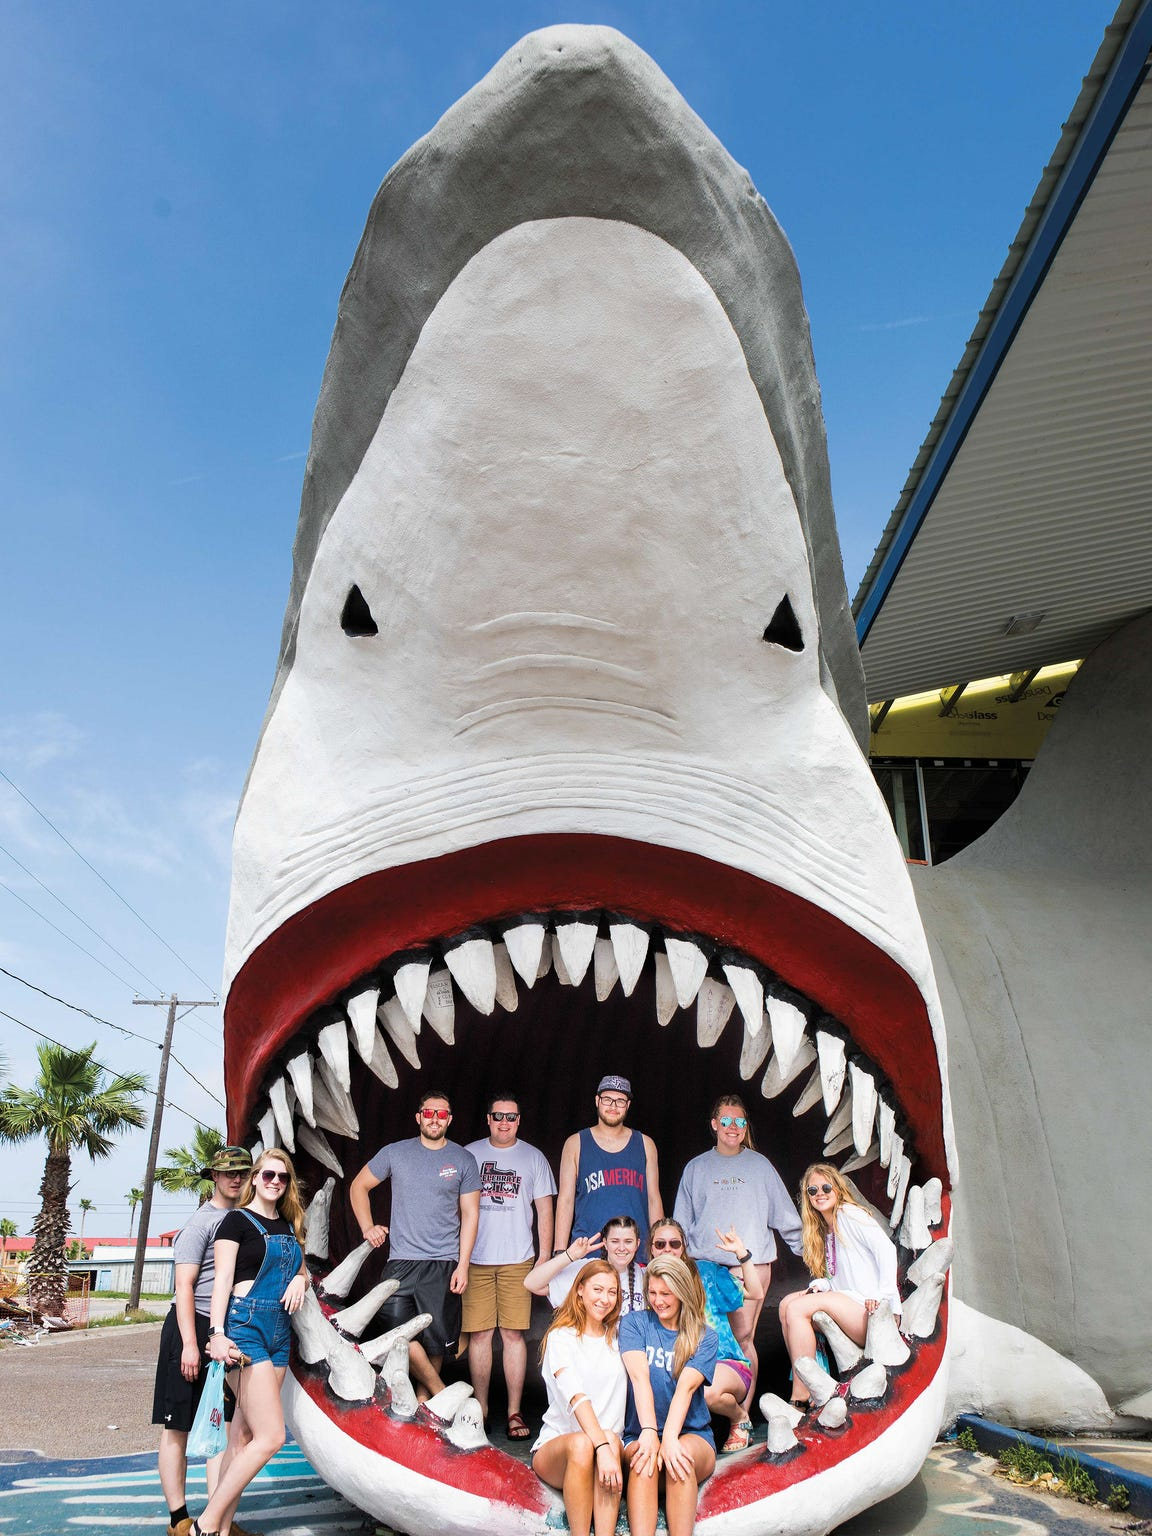 This massive open-jawed shark sculpture, a popular